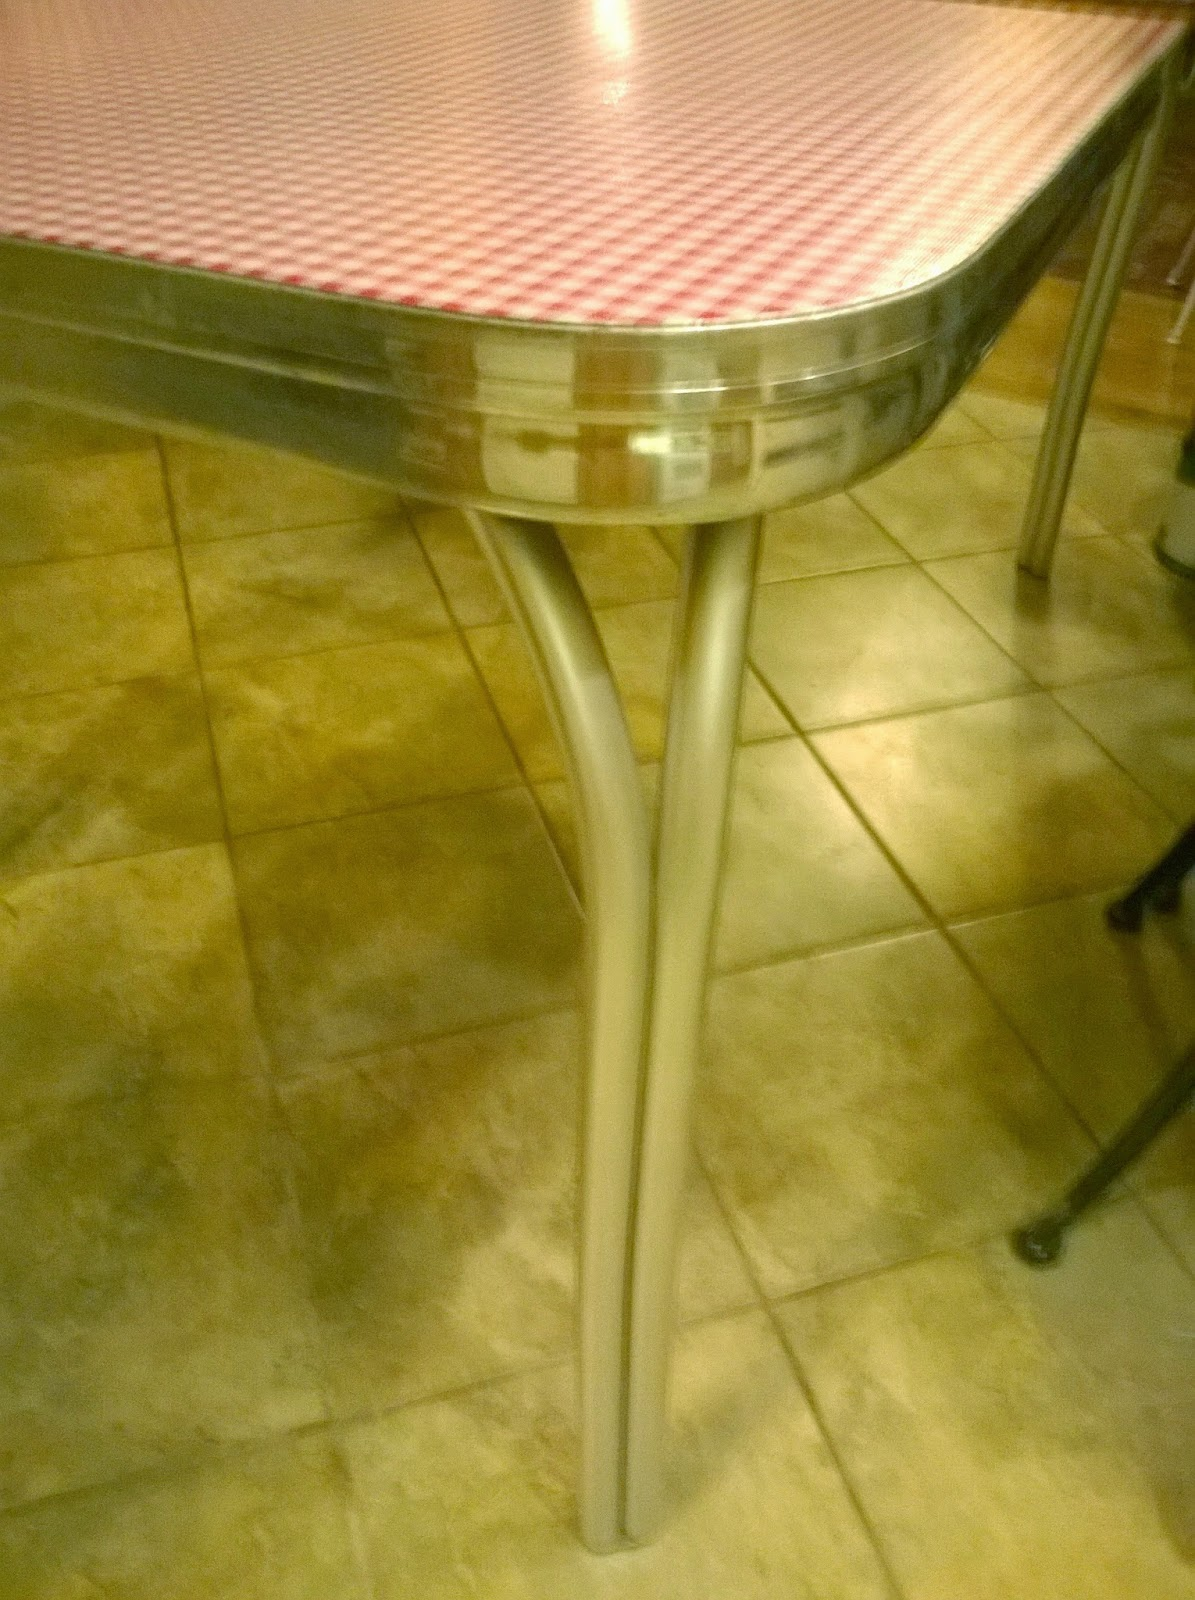 Retro chrome table redo redo it yourself inspirations retro i ran out of contact cement and tried rubber cement to secure the inside edges unlike contact cement it remained wet longer watchthetrailerfo